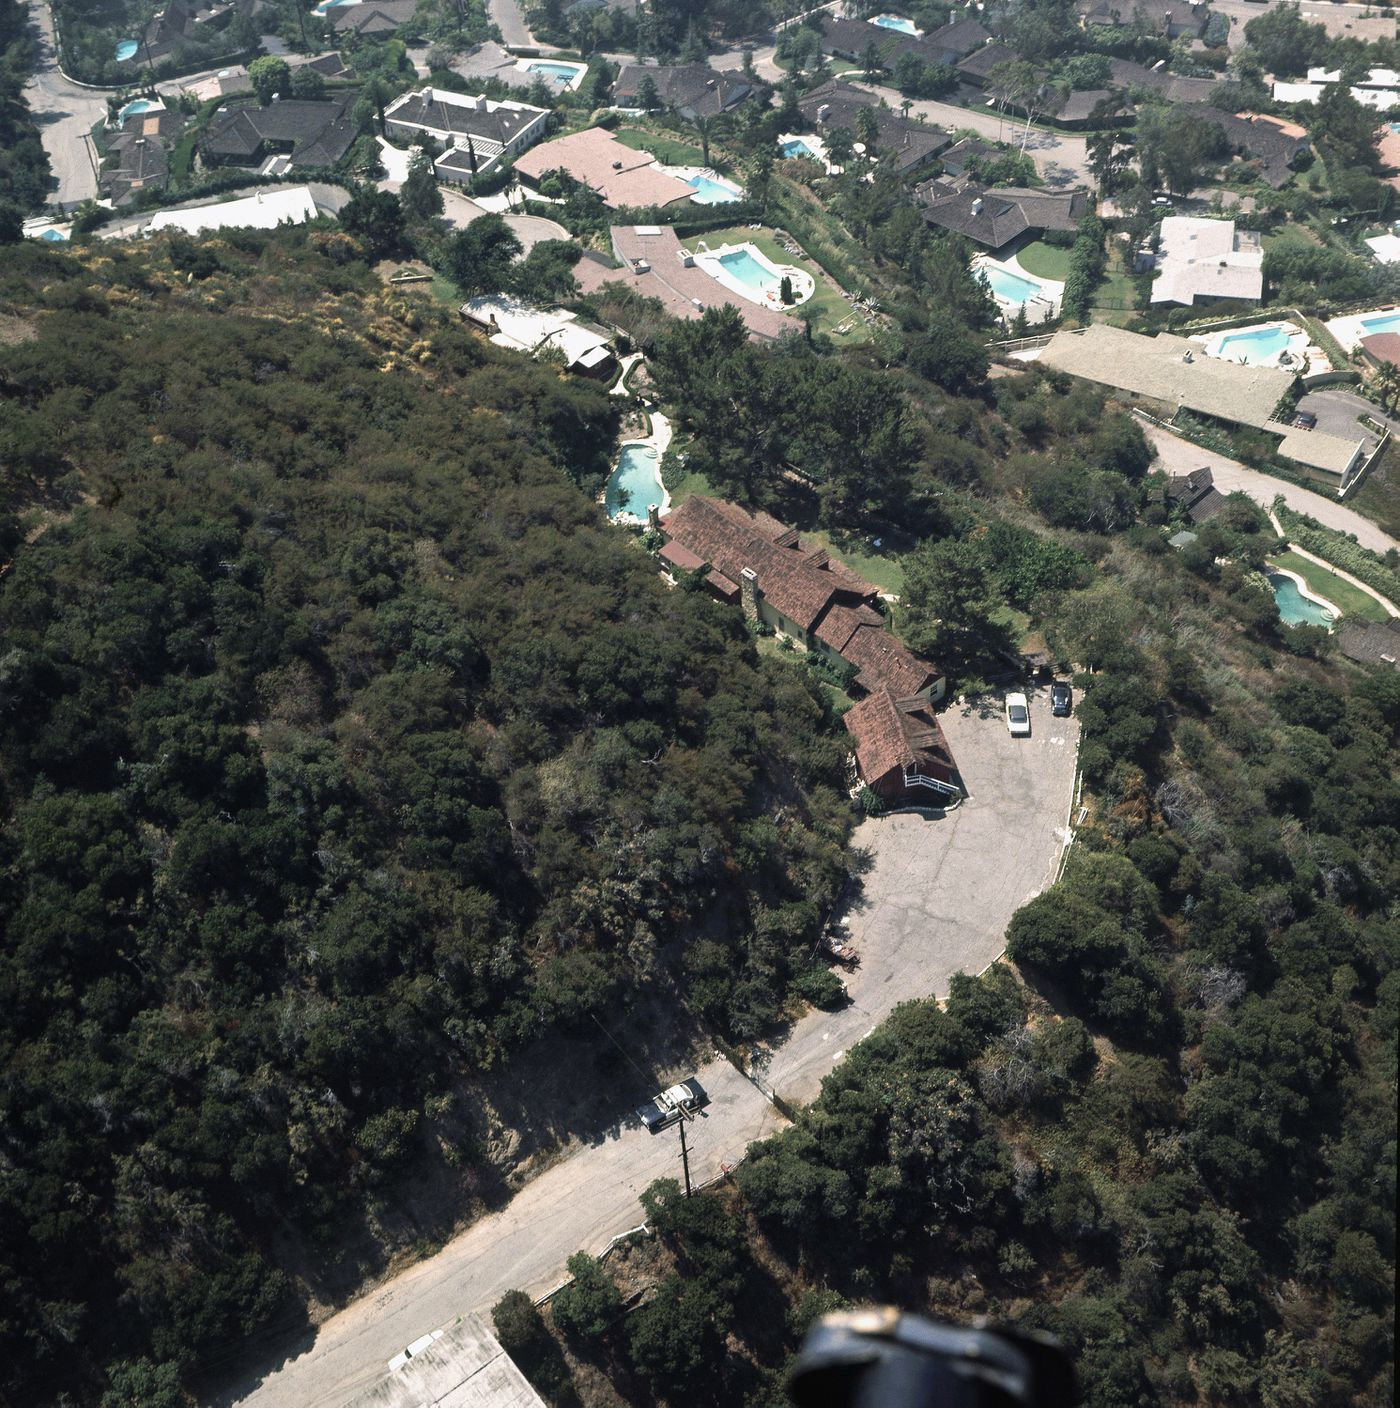 10500 Cielo Drive: The Manson murder house - Curbed LA